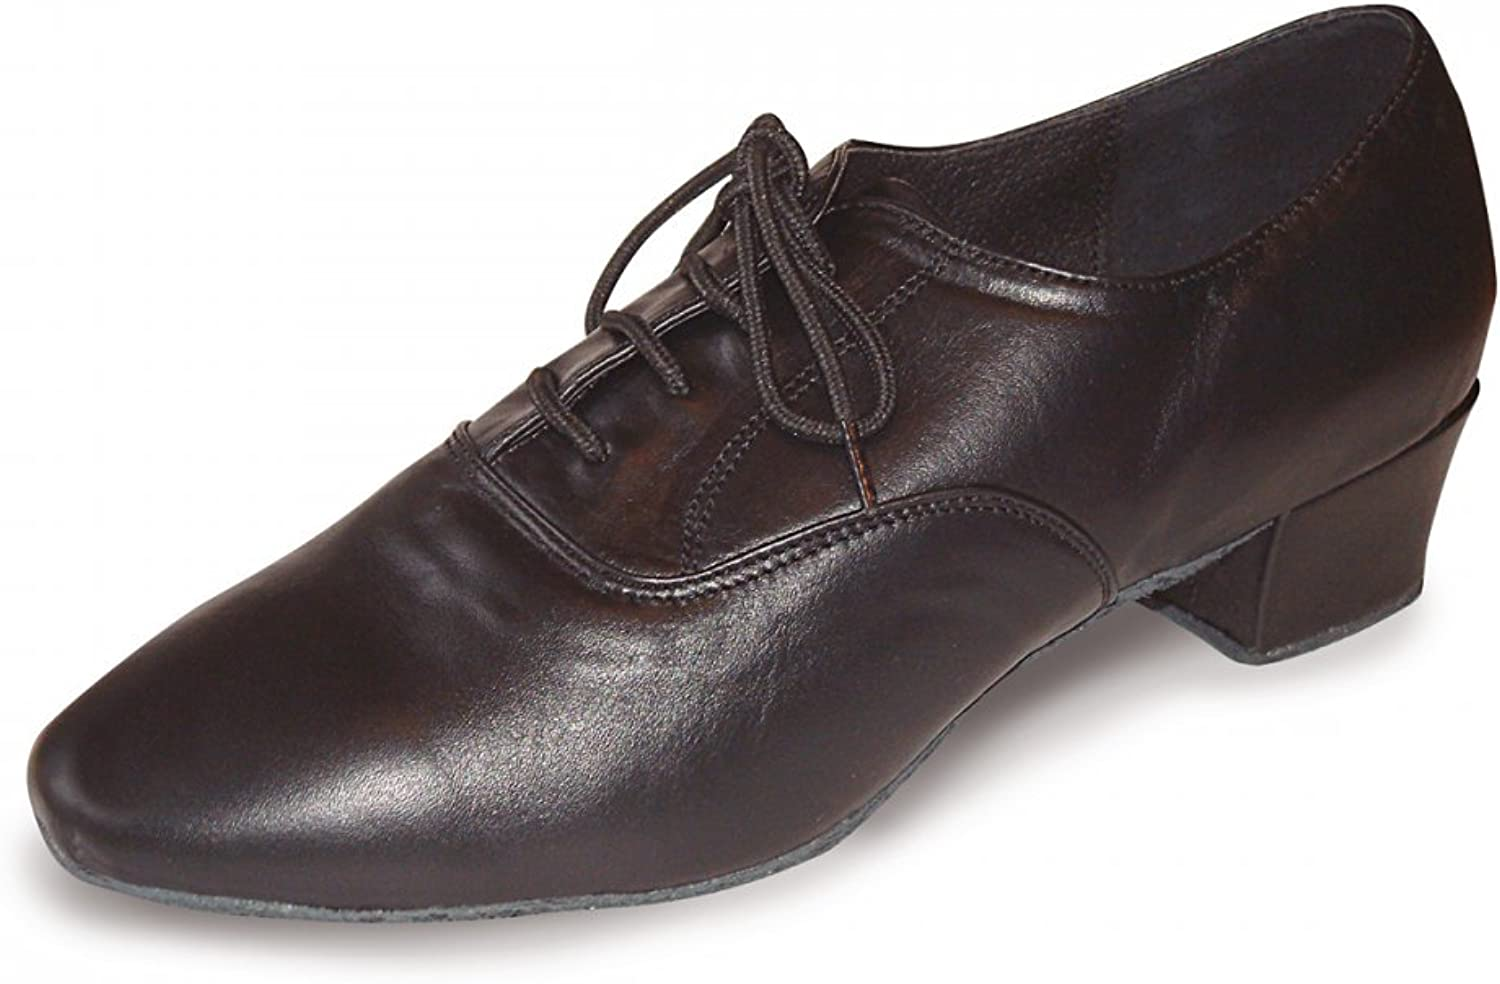 Roch Valley Vince Men's Latin shoes